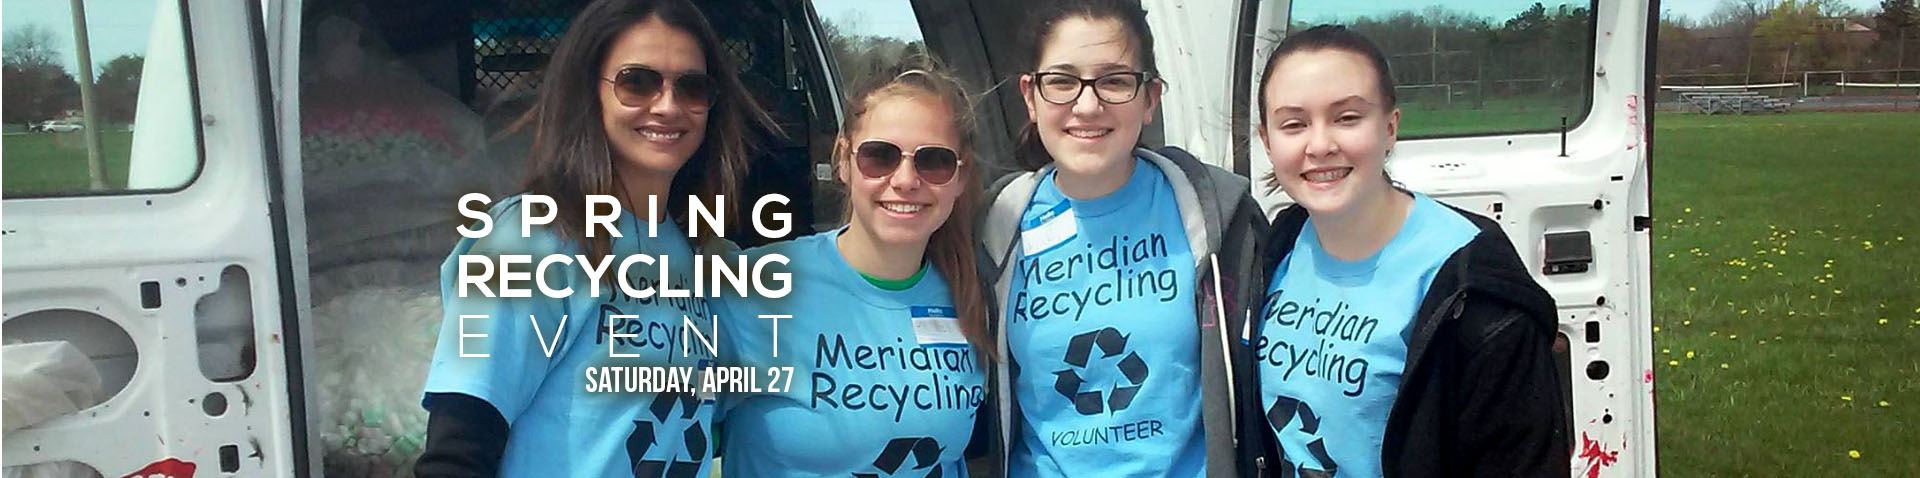 Spring Recycling Event